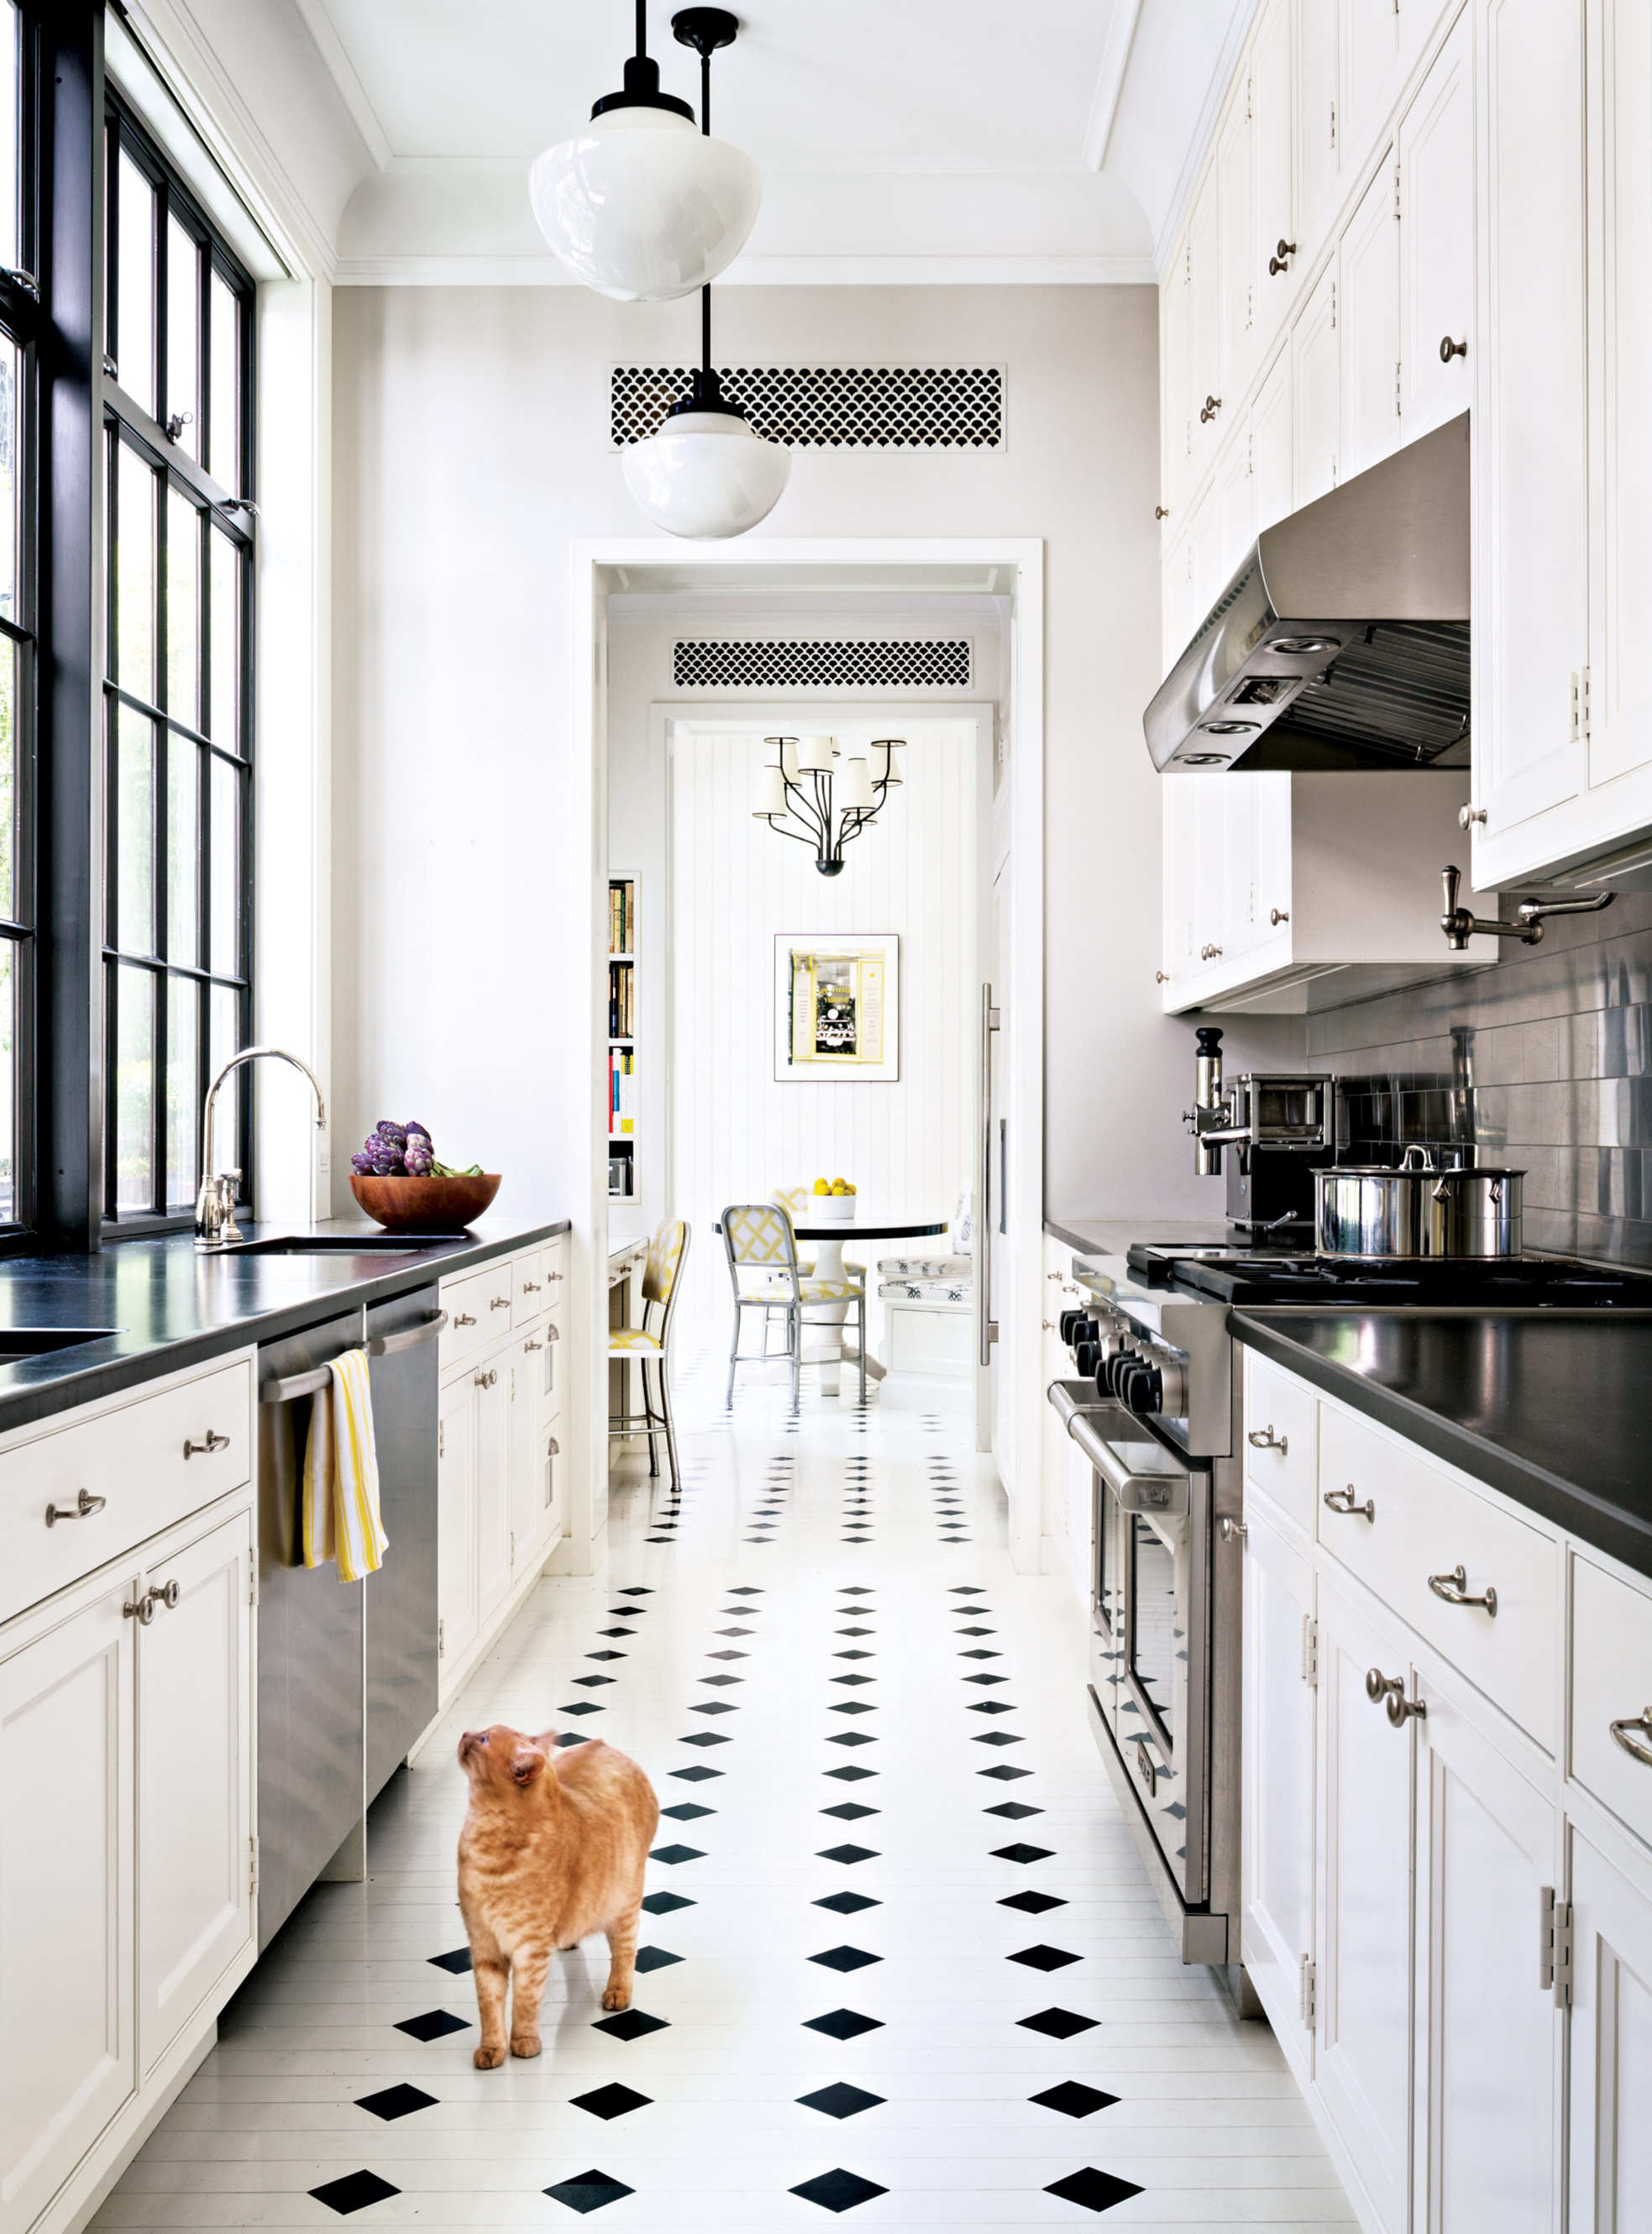 This Uptown style in classic black and white is very retro and will stand the test of time. Design by: Steven Harris Architects, Photo by: Scott Frances